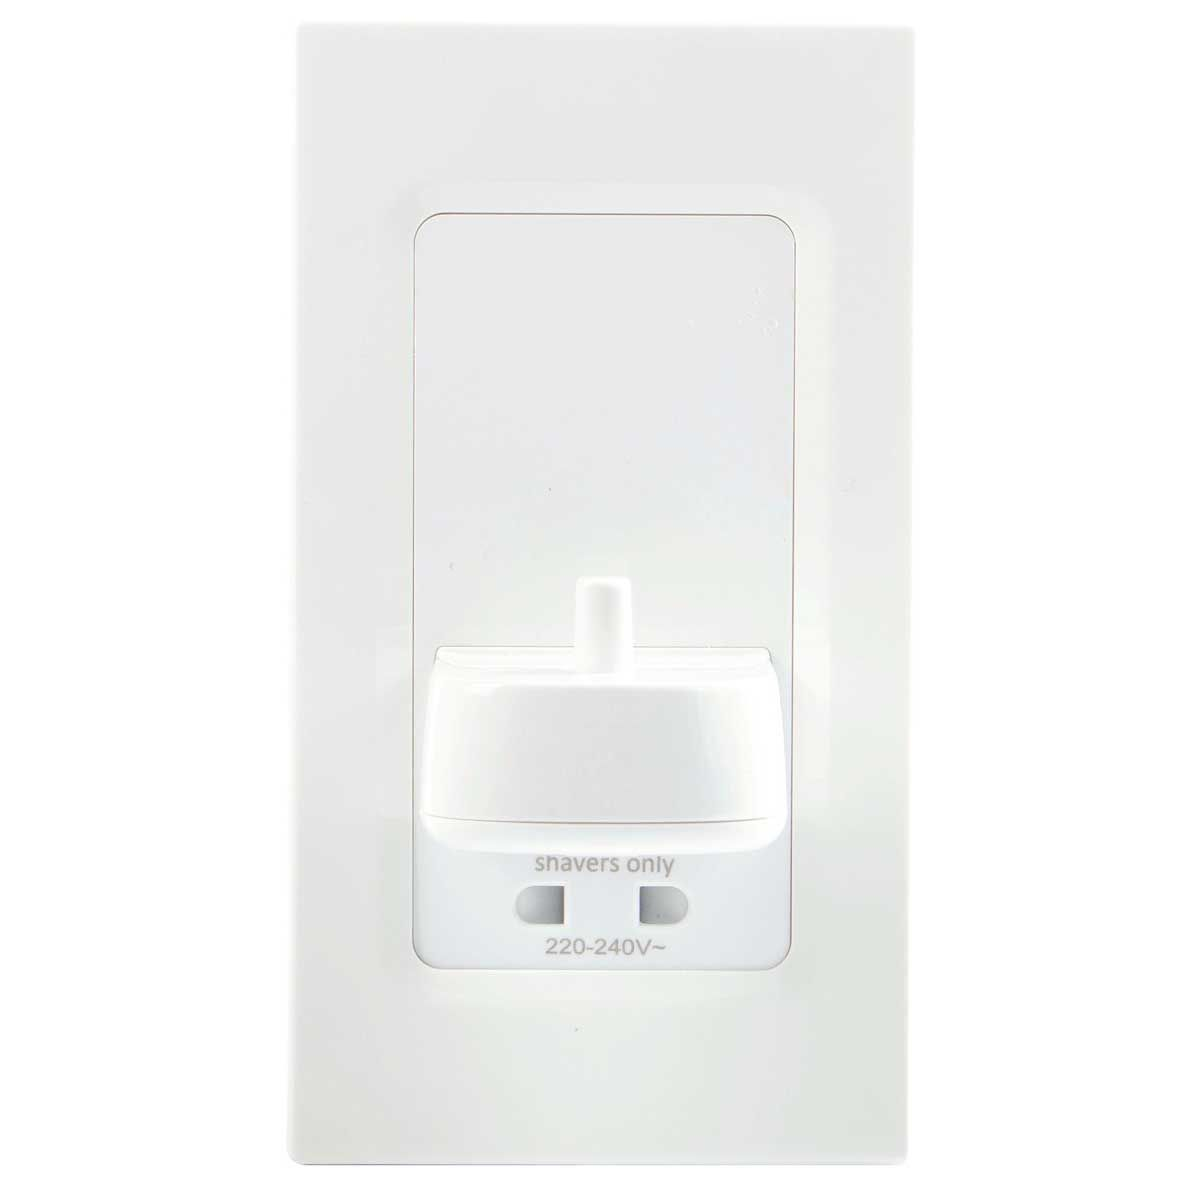 ProofVision TBCharge Electric Toothbrush Charger with Shaver Socket White